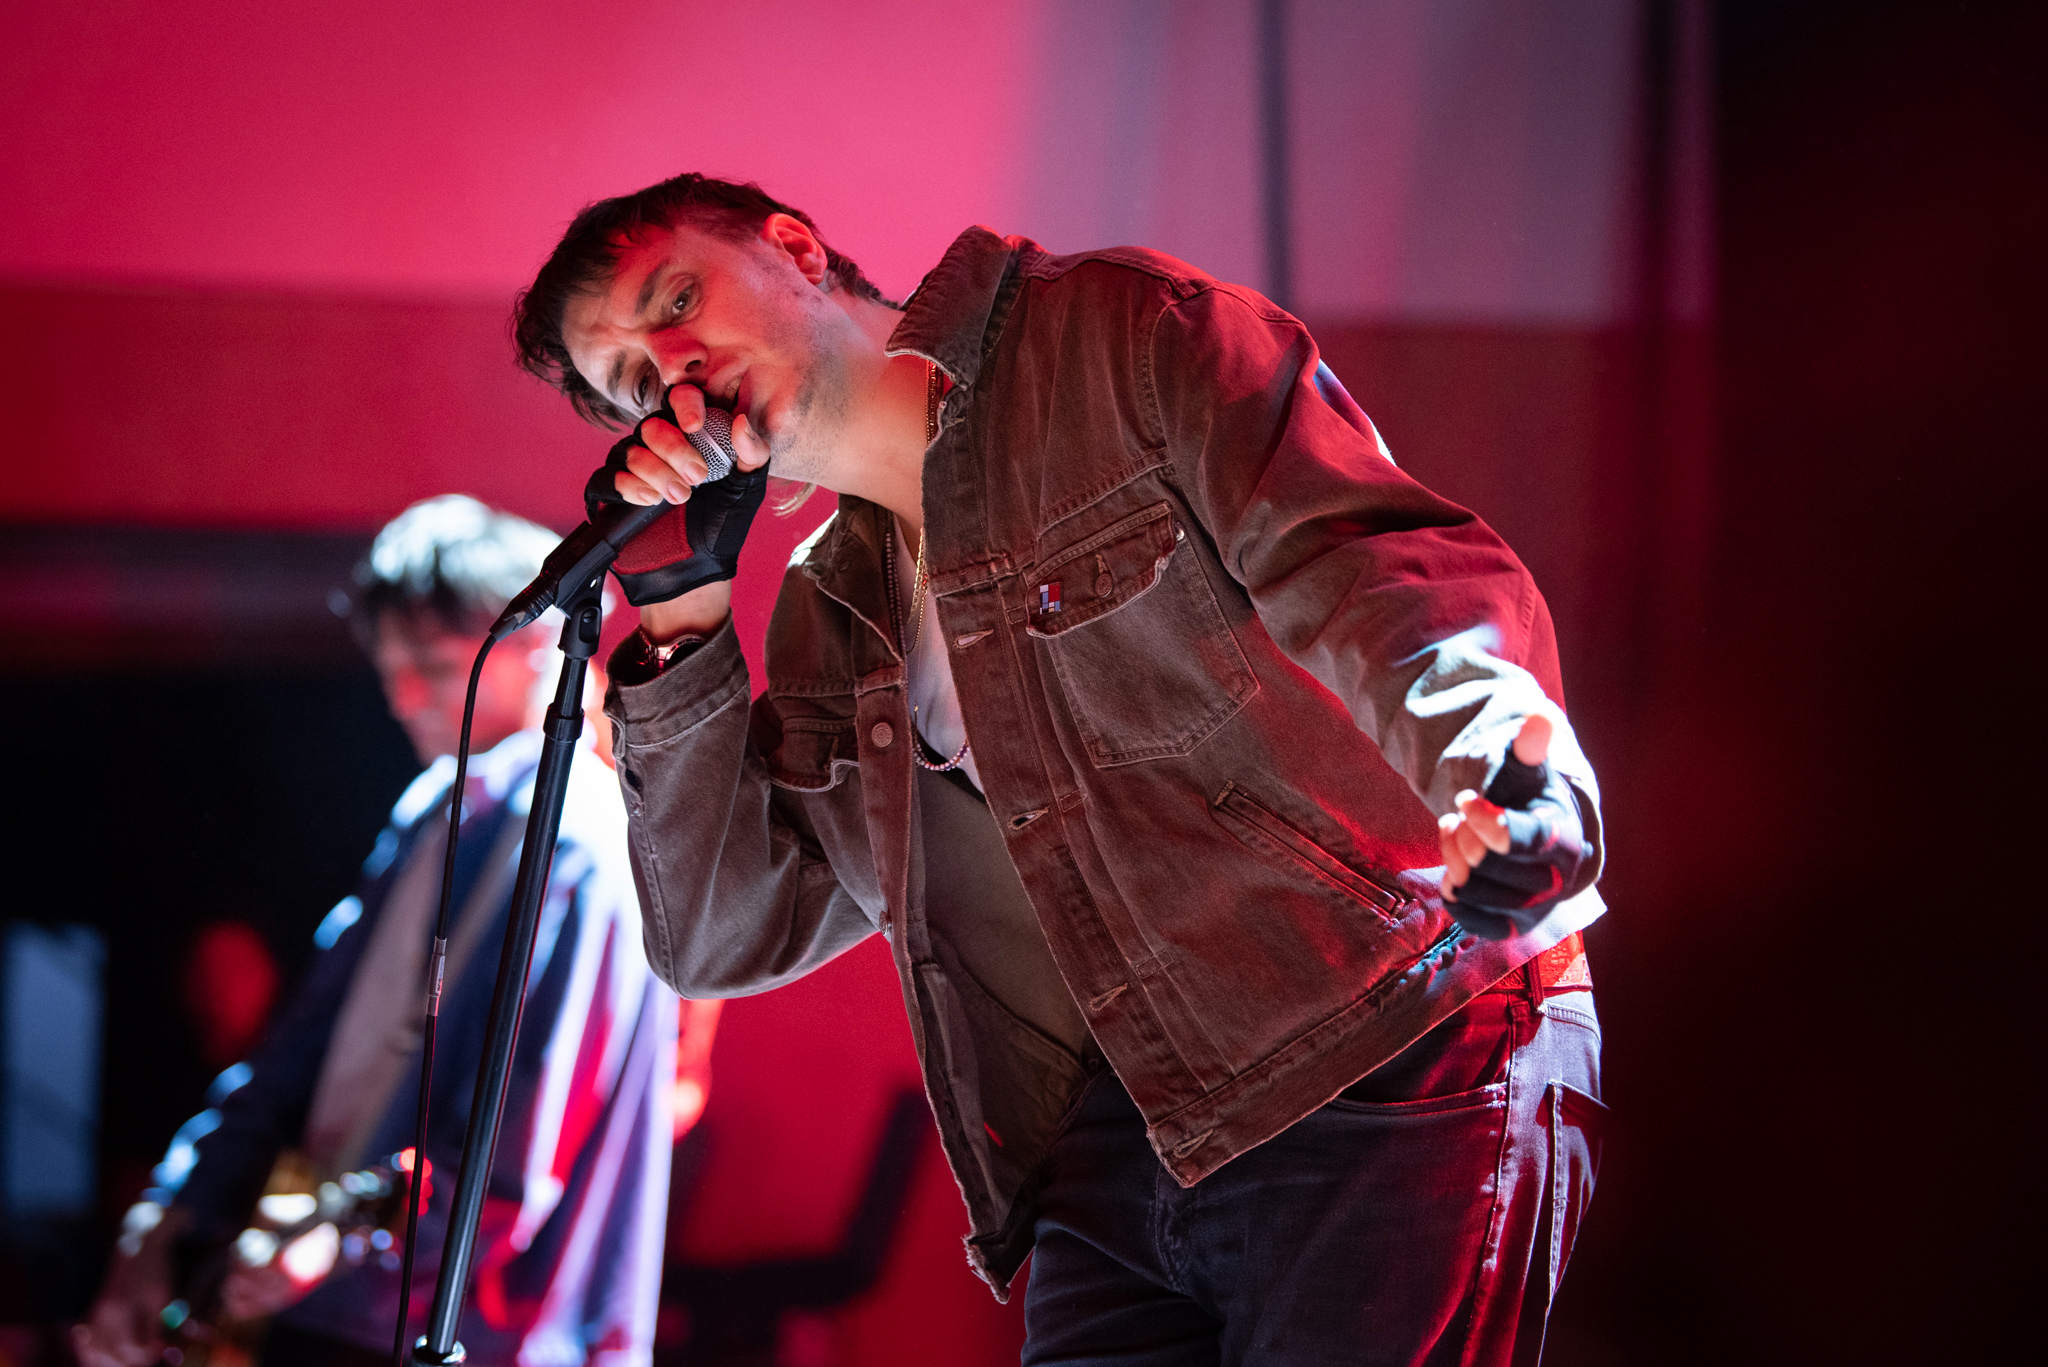 LIVE REVIEW: The Strokes - Waterfront Hall, Belfast